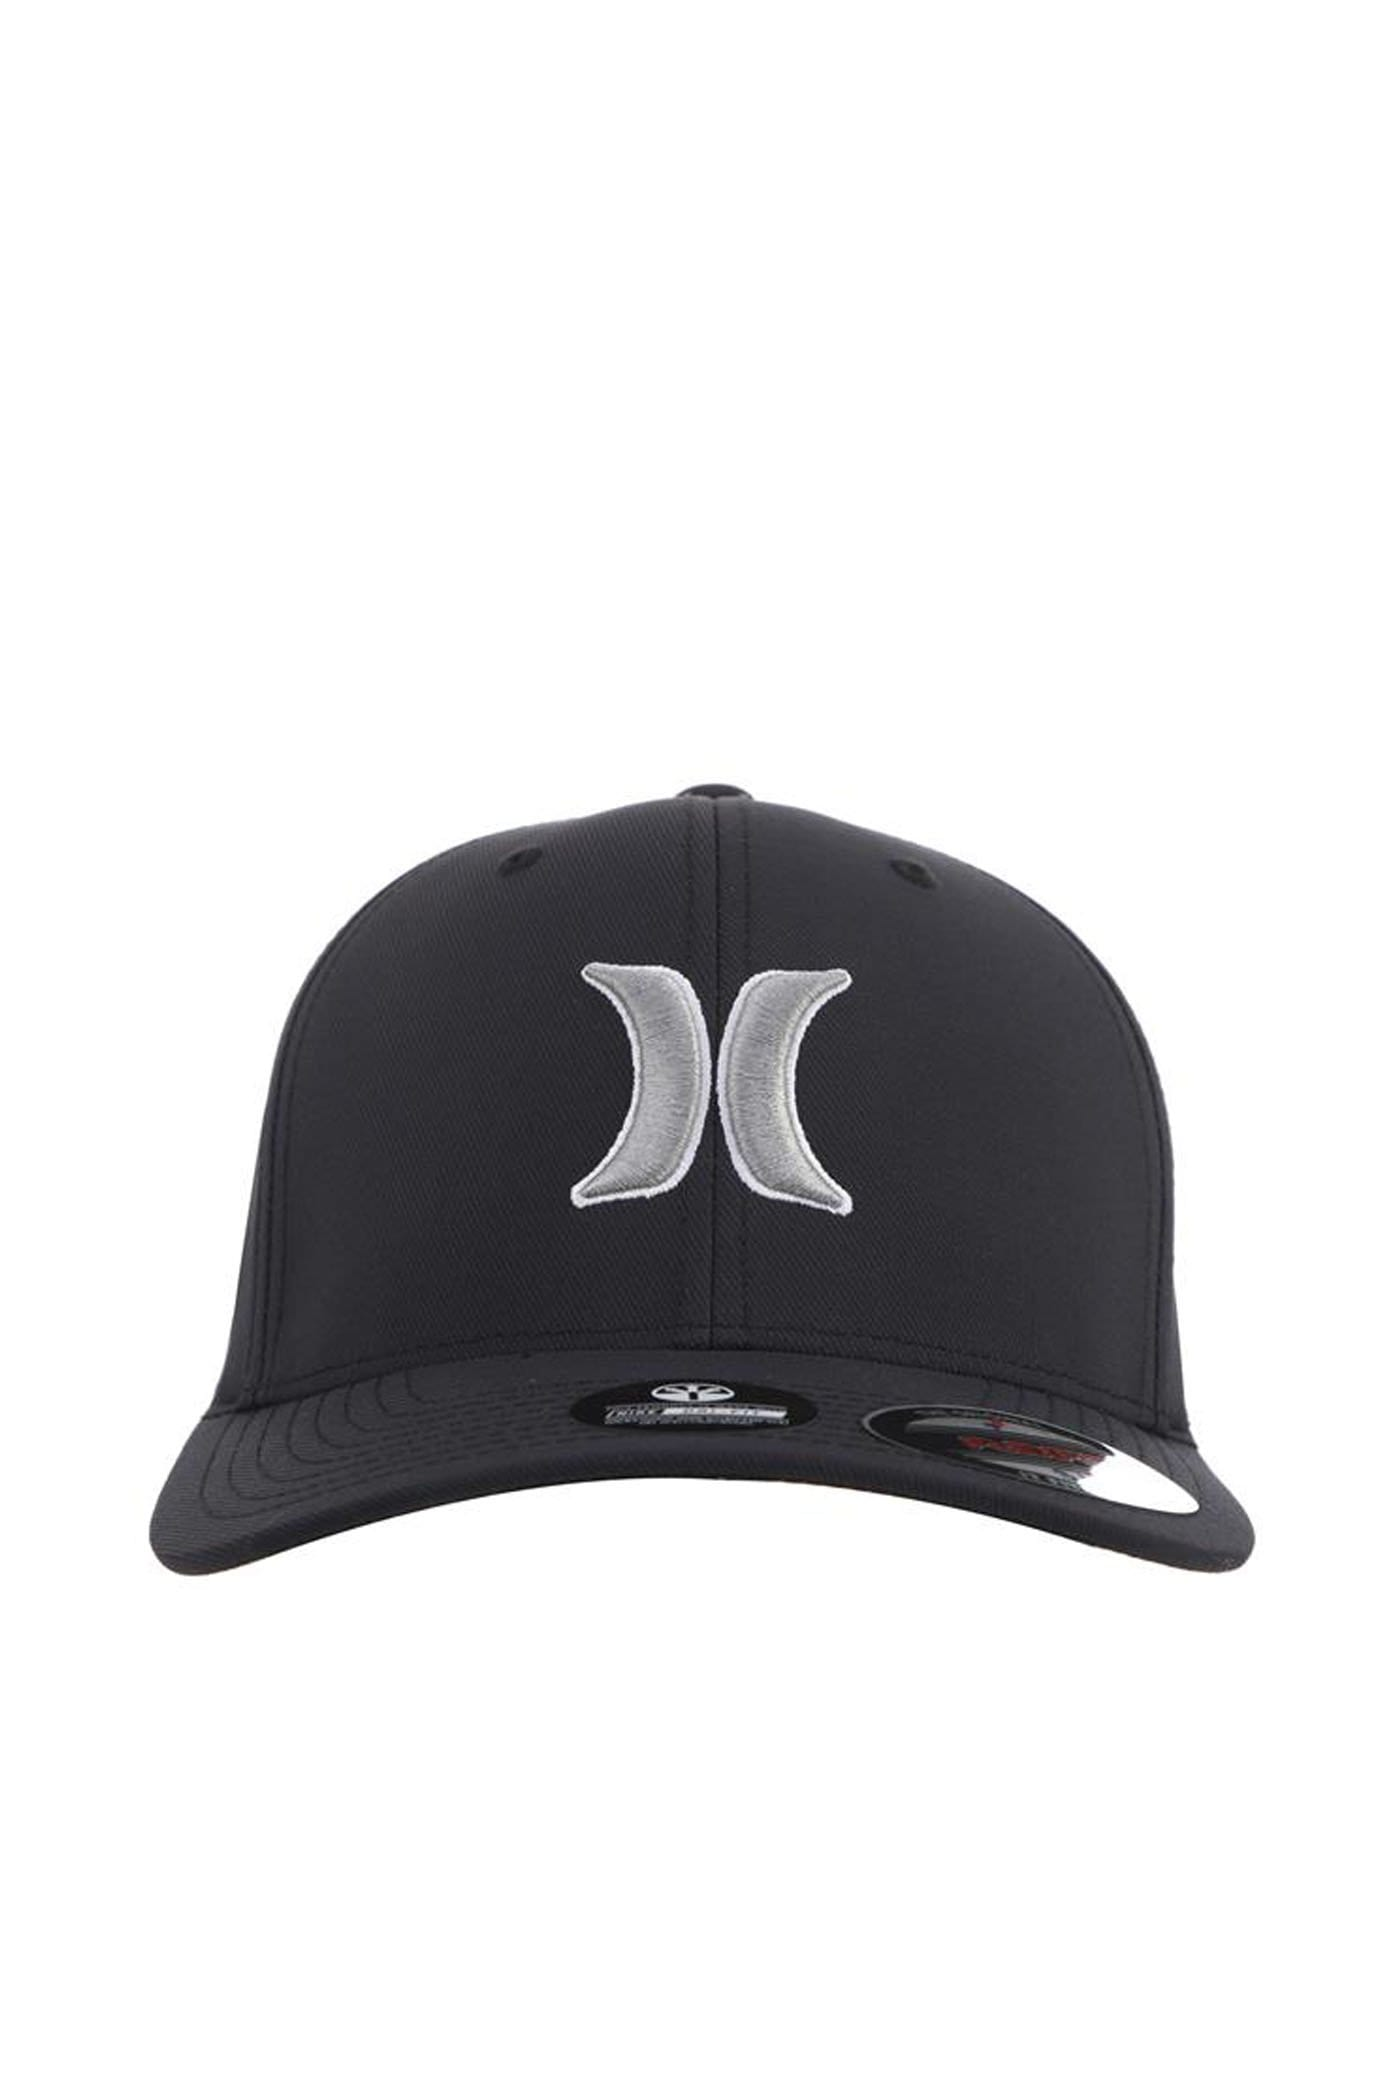 Dri-Fit One & Only 2.0 Hat Black Silver